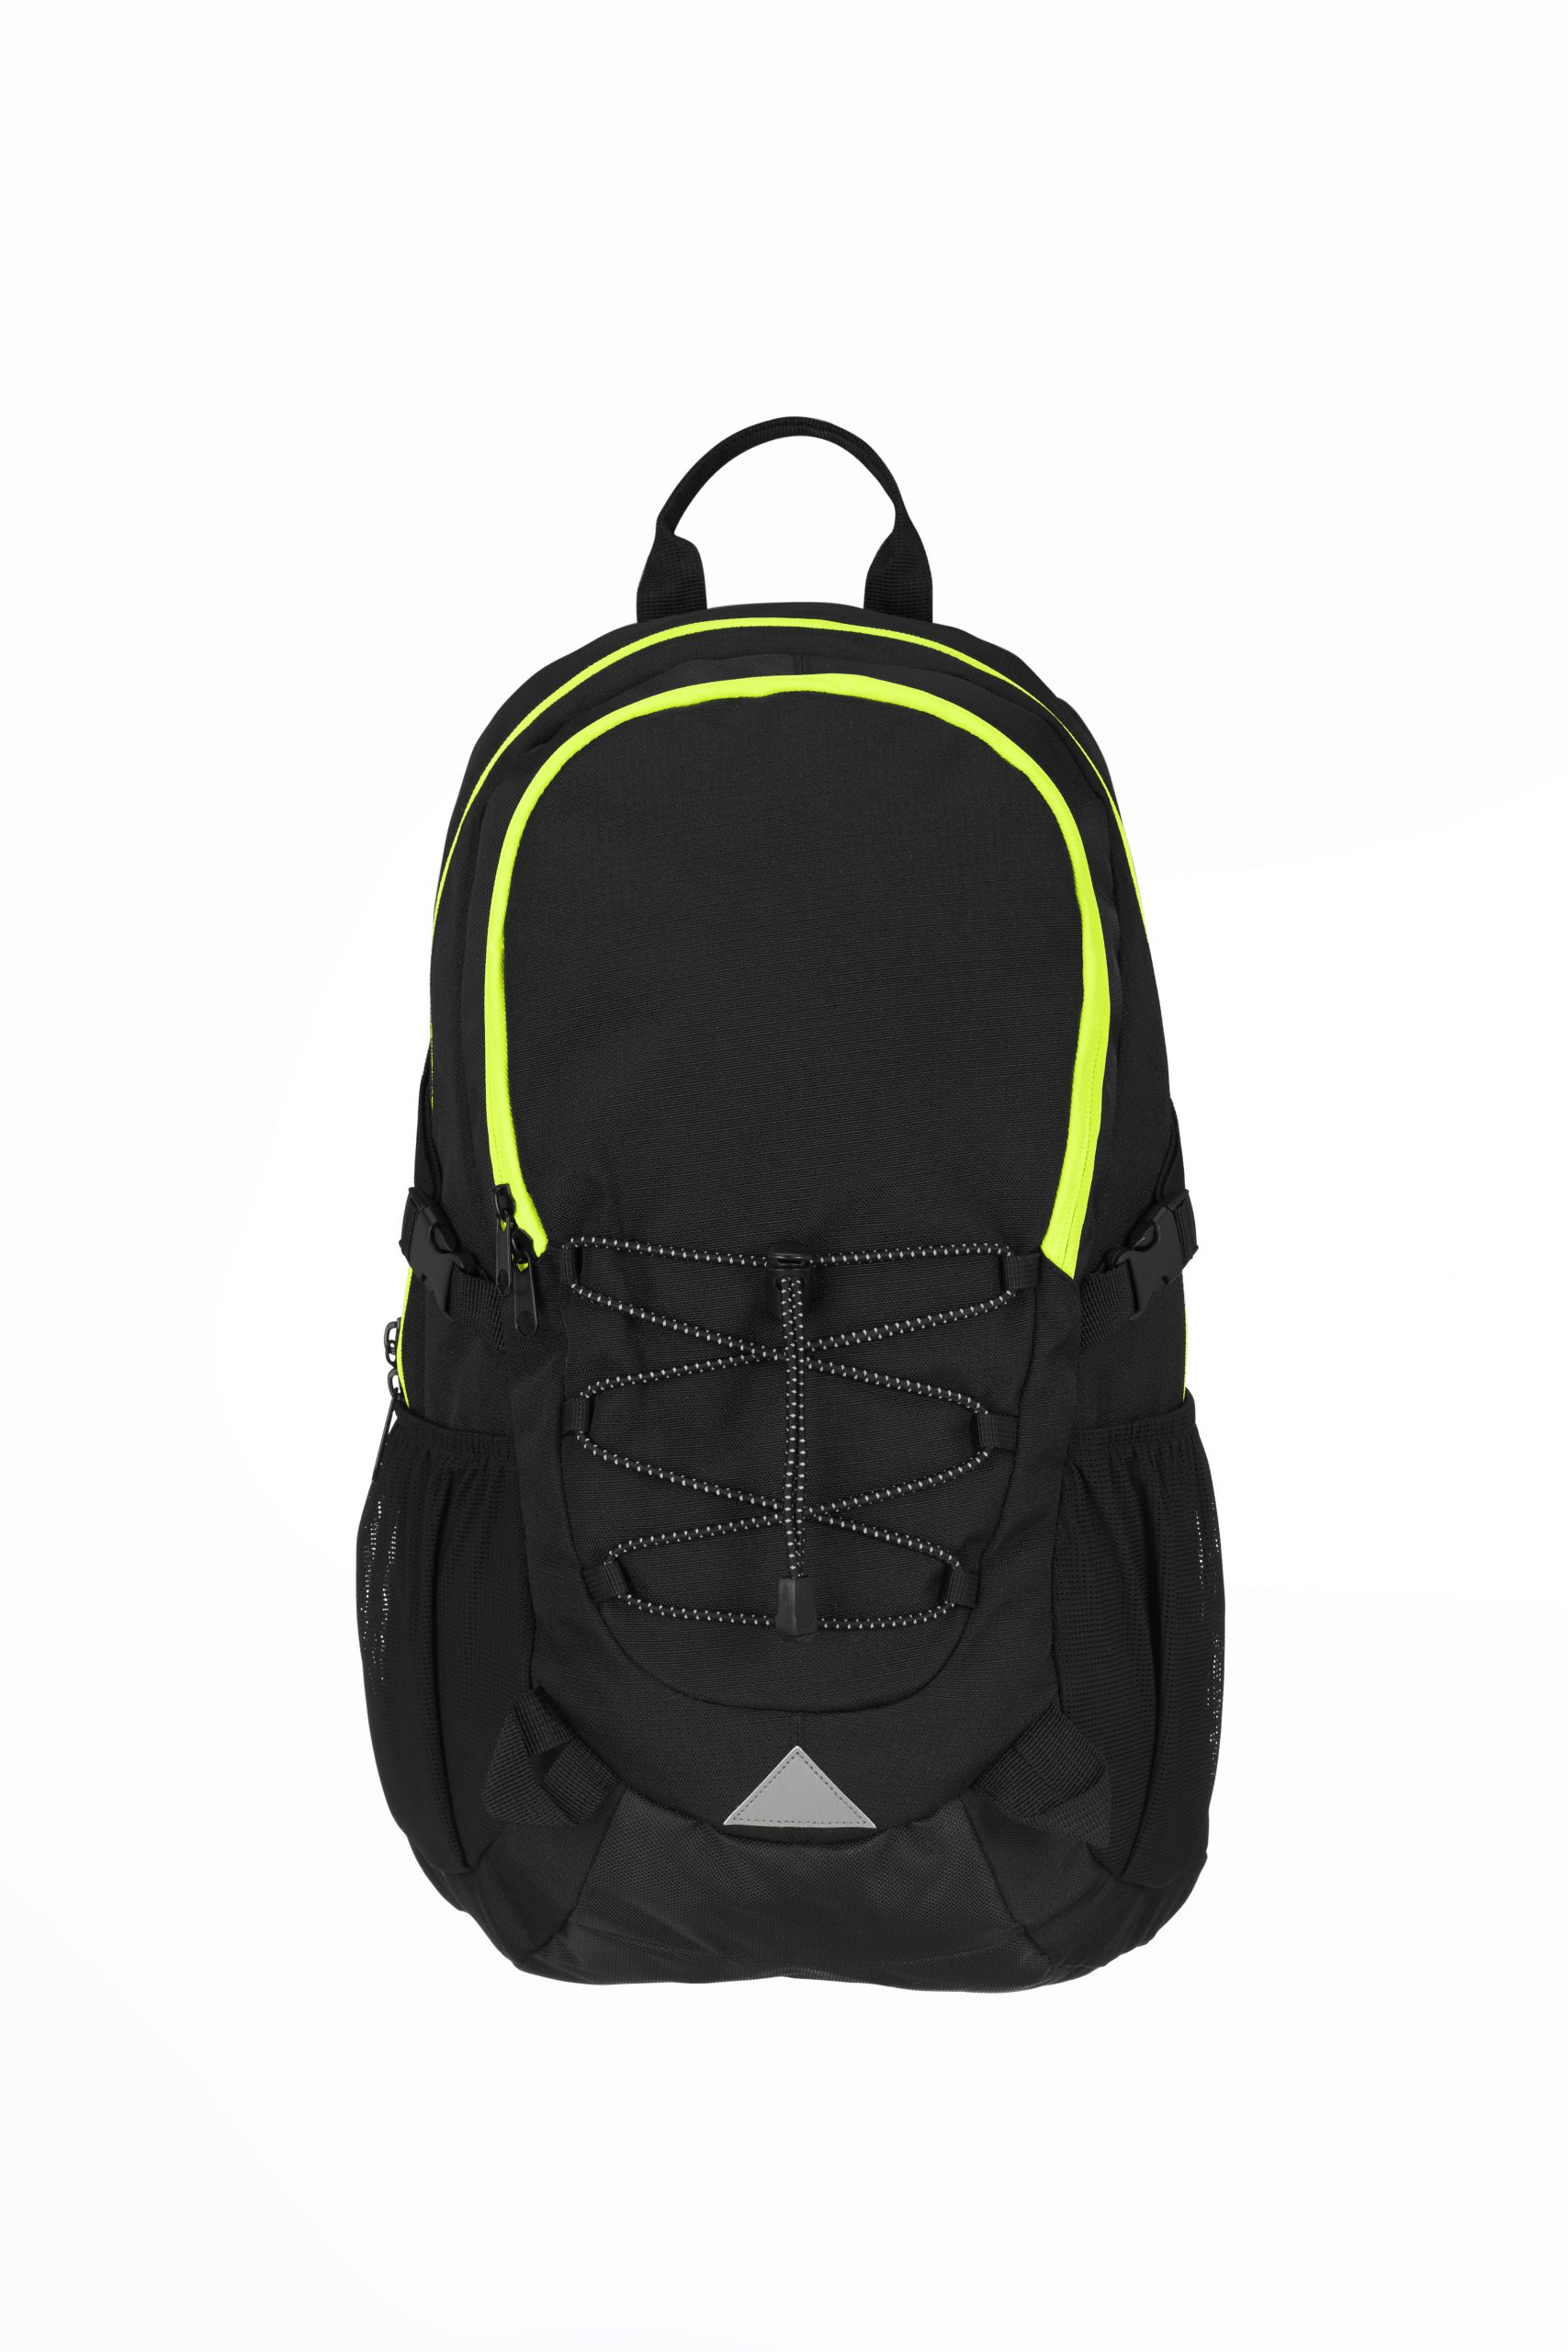 Grizzly Active Line Daypack musta/keltainen